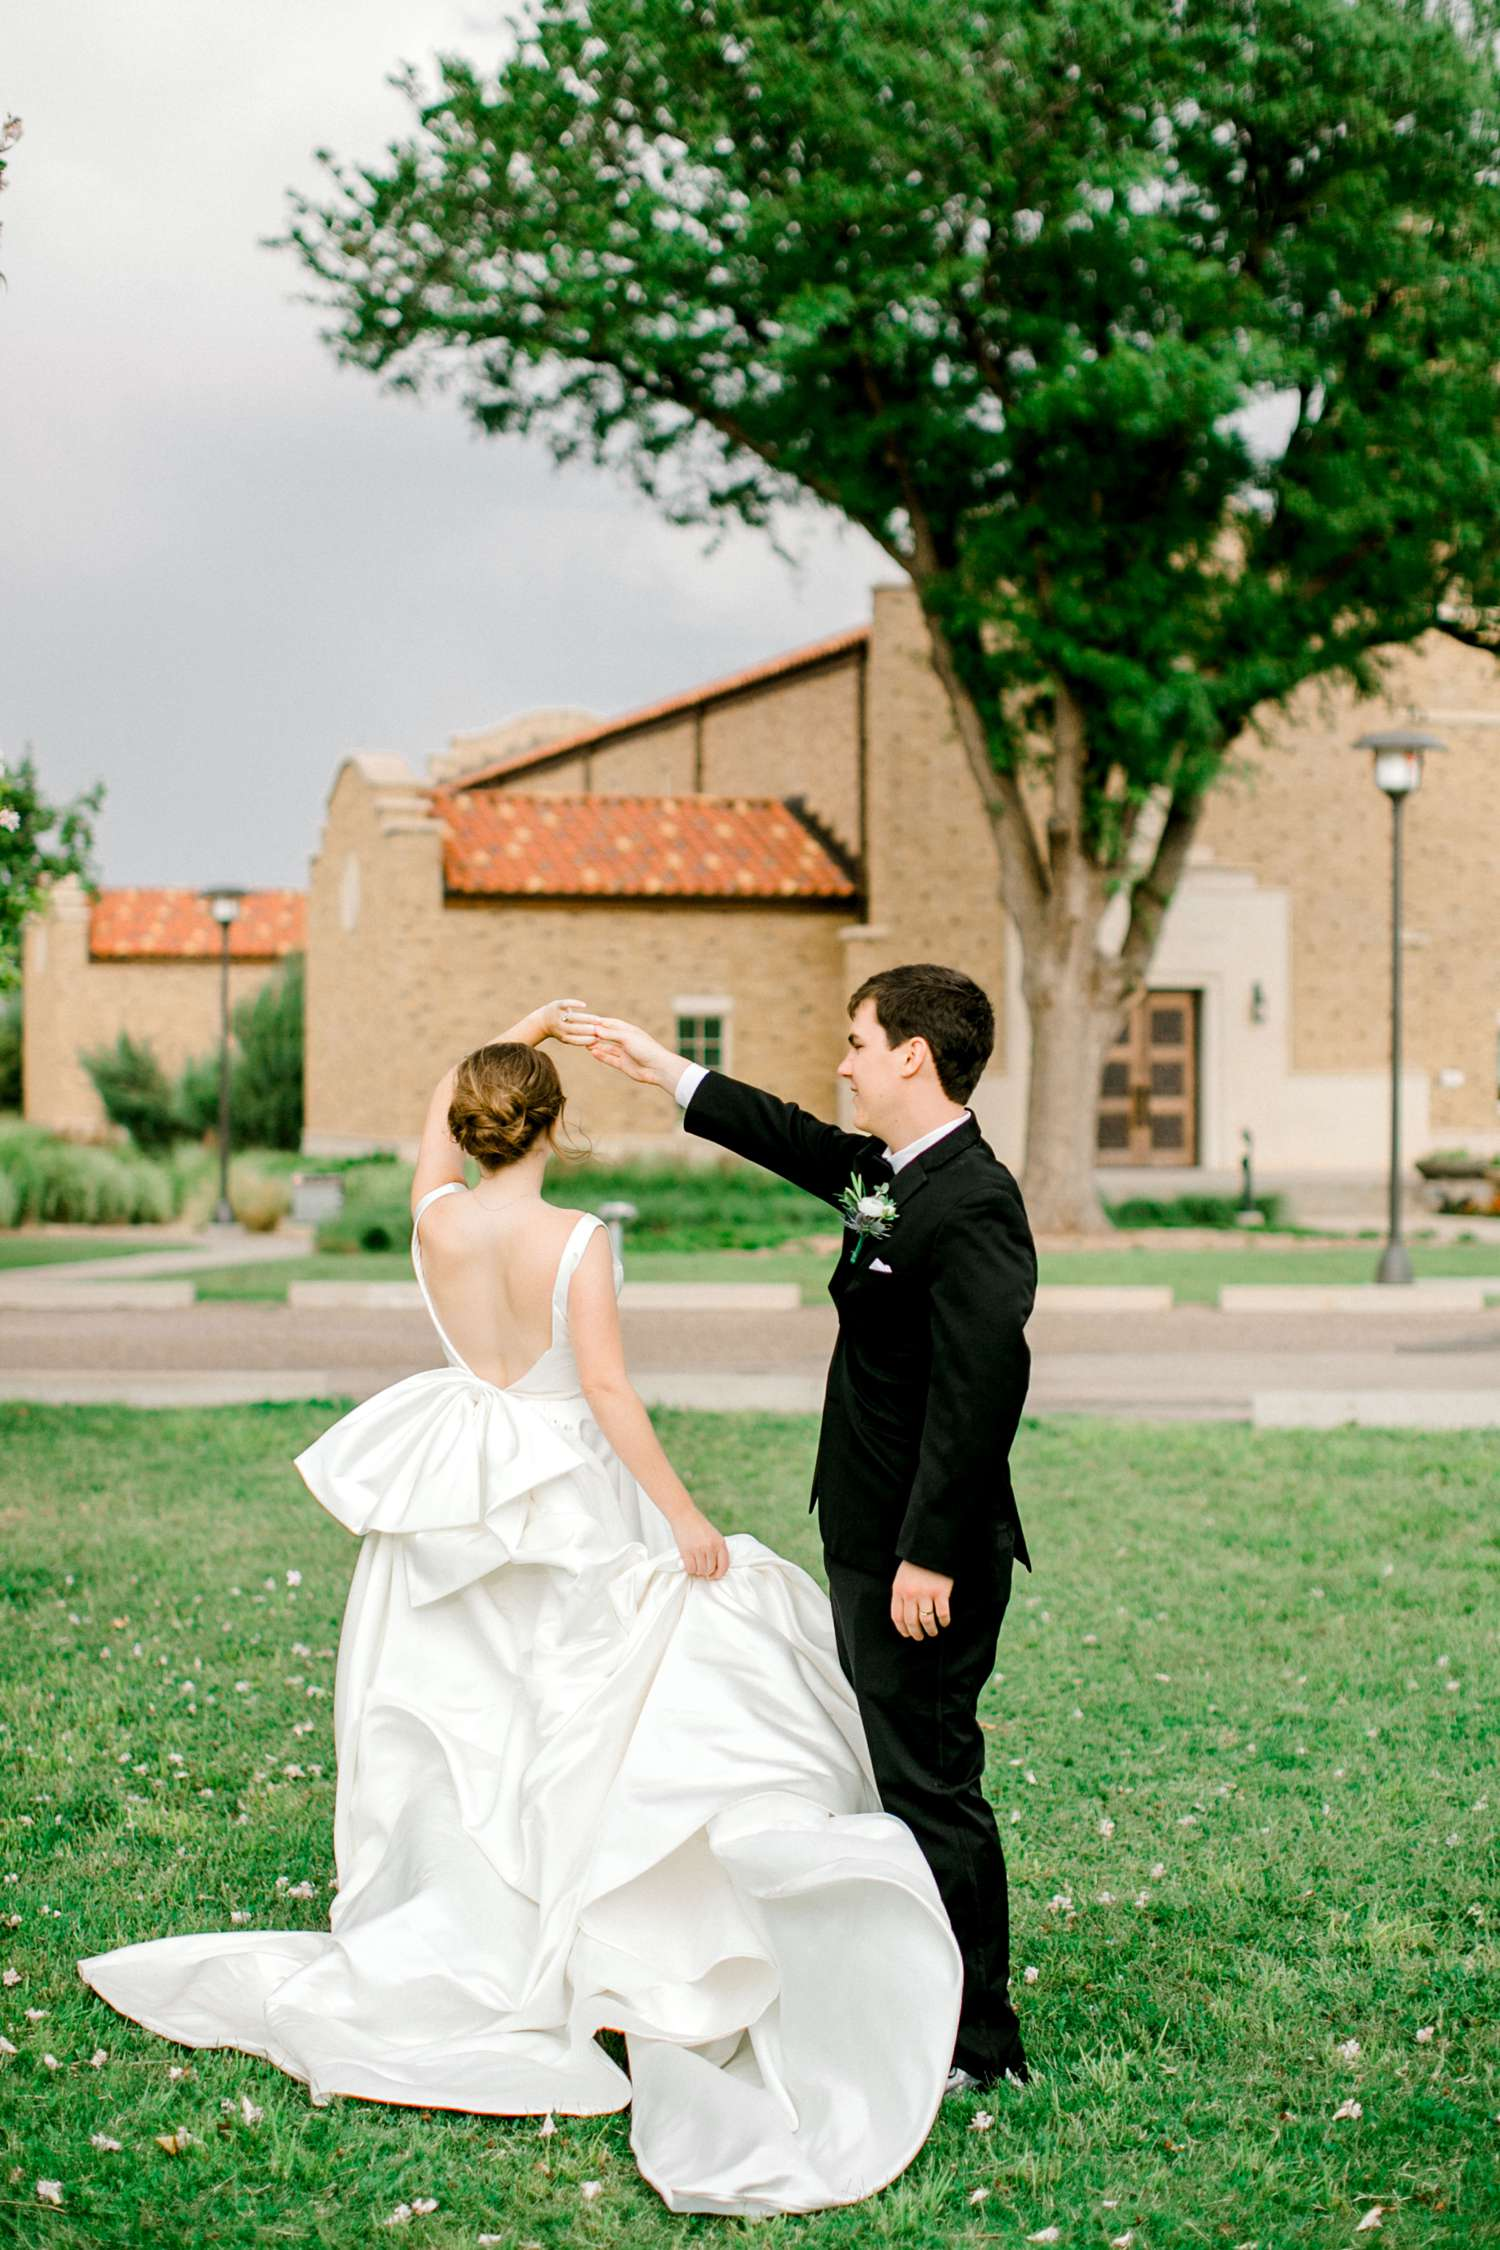 HANNAH+CRAIG+CHILDS+TEXAS+TECH+WEDDING+ALLEEJ+LUBBOCK+PHOTOGRAPHER_0114.jpg